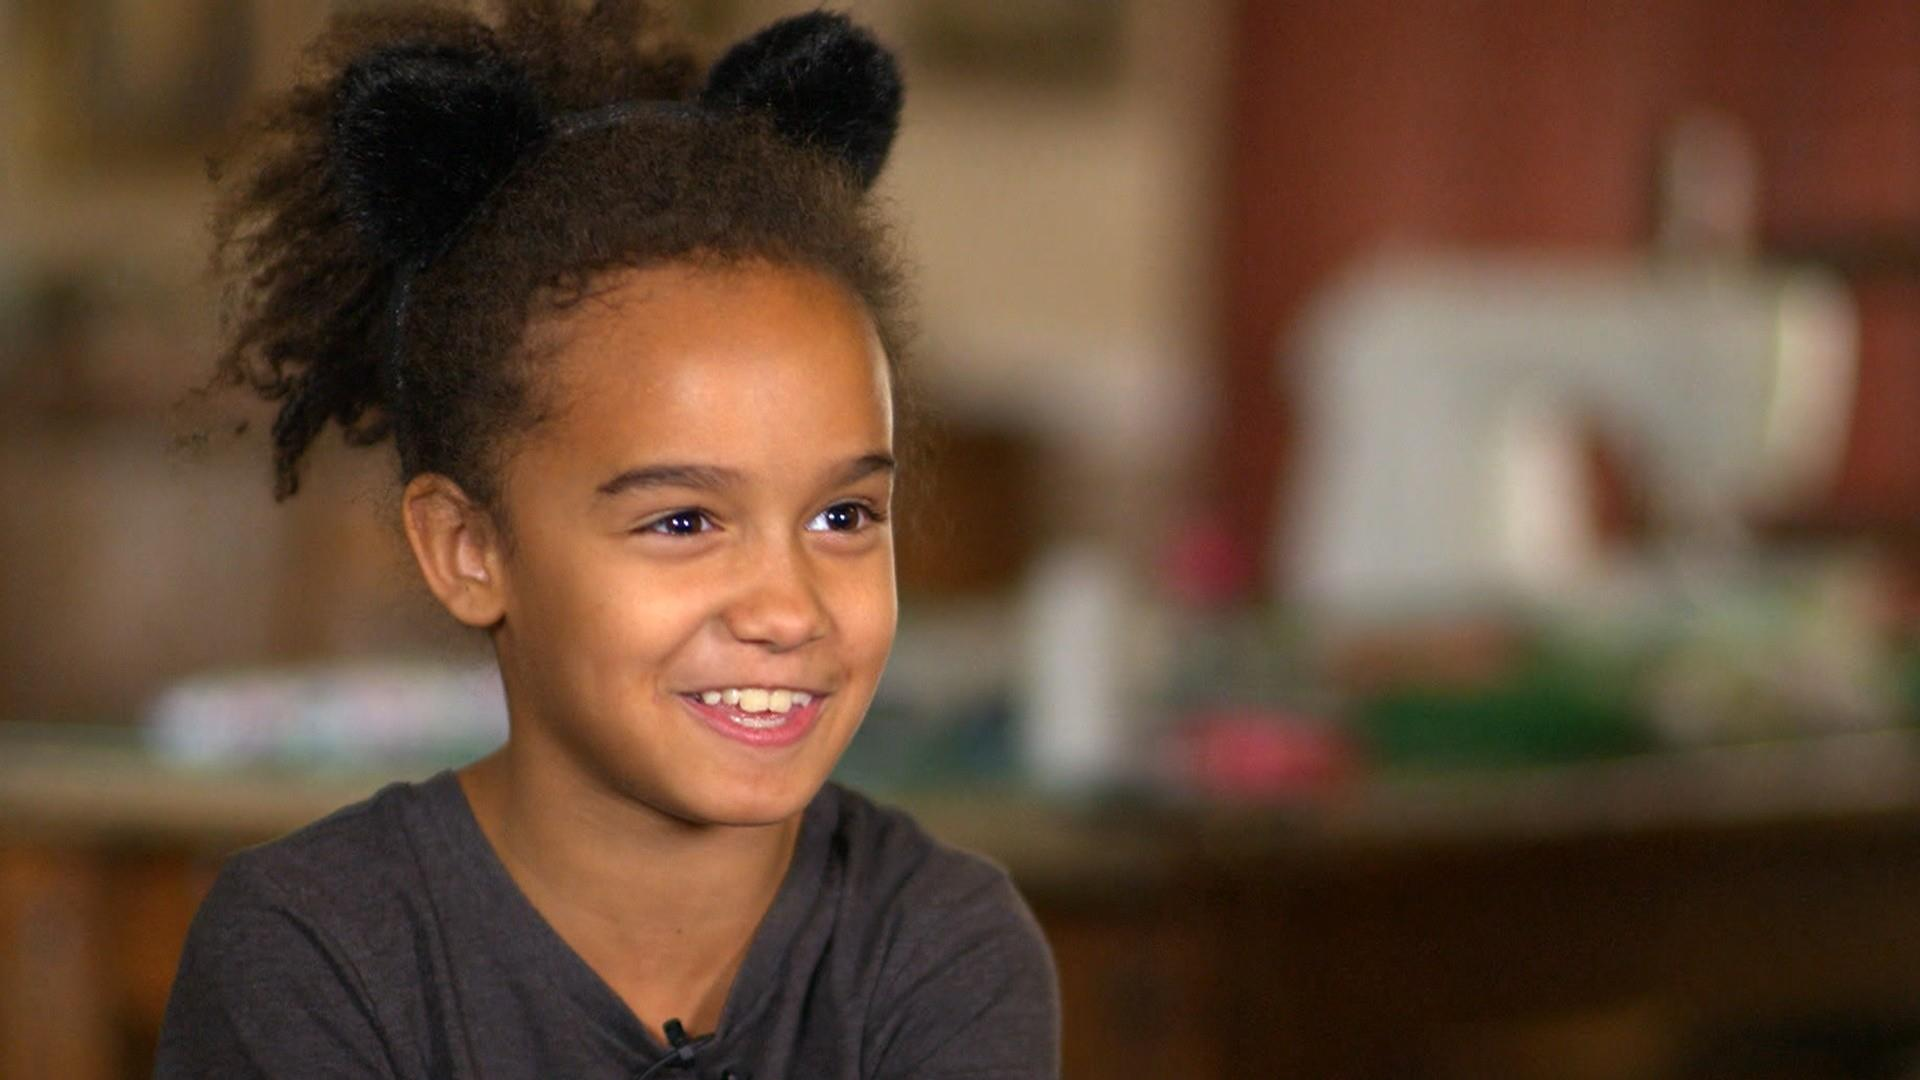 Meet the 10 year-old making stuffed animals for kids in need